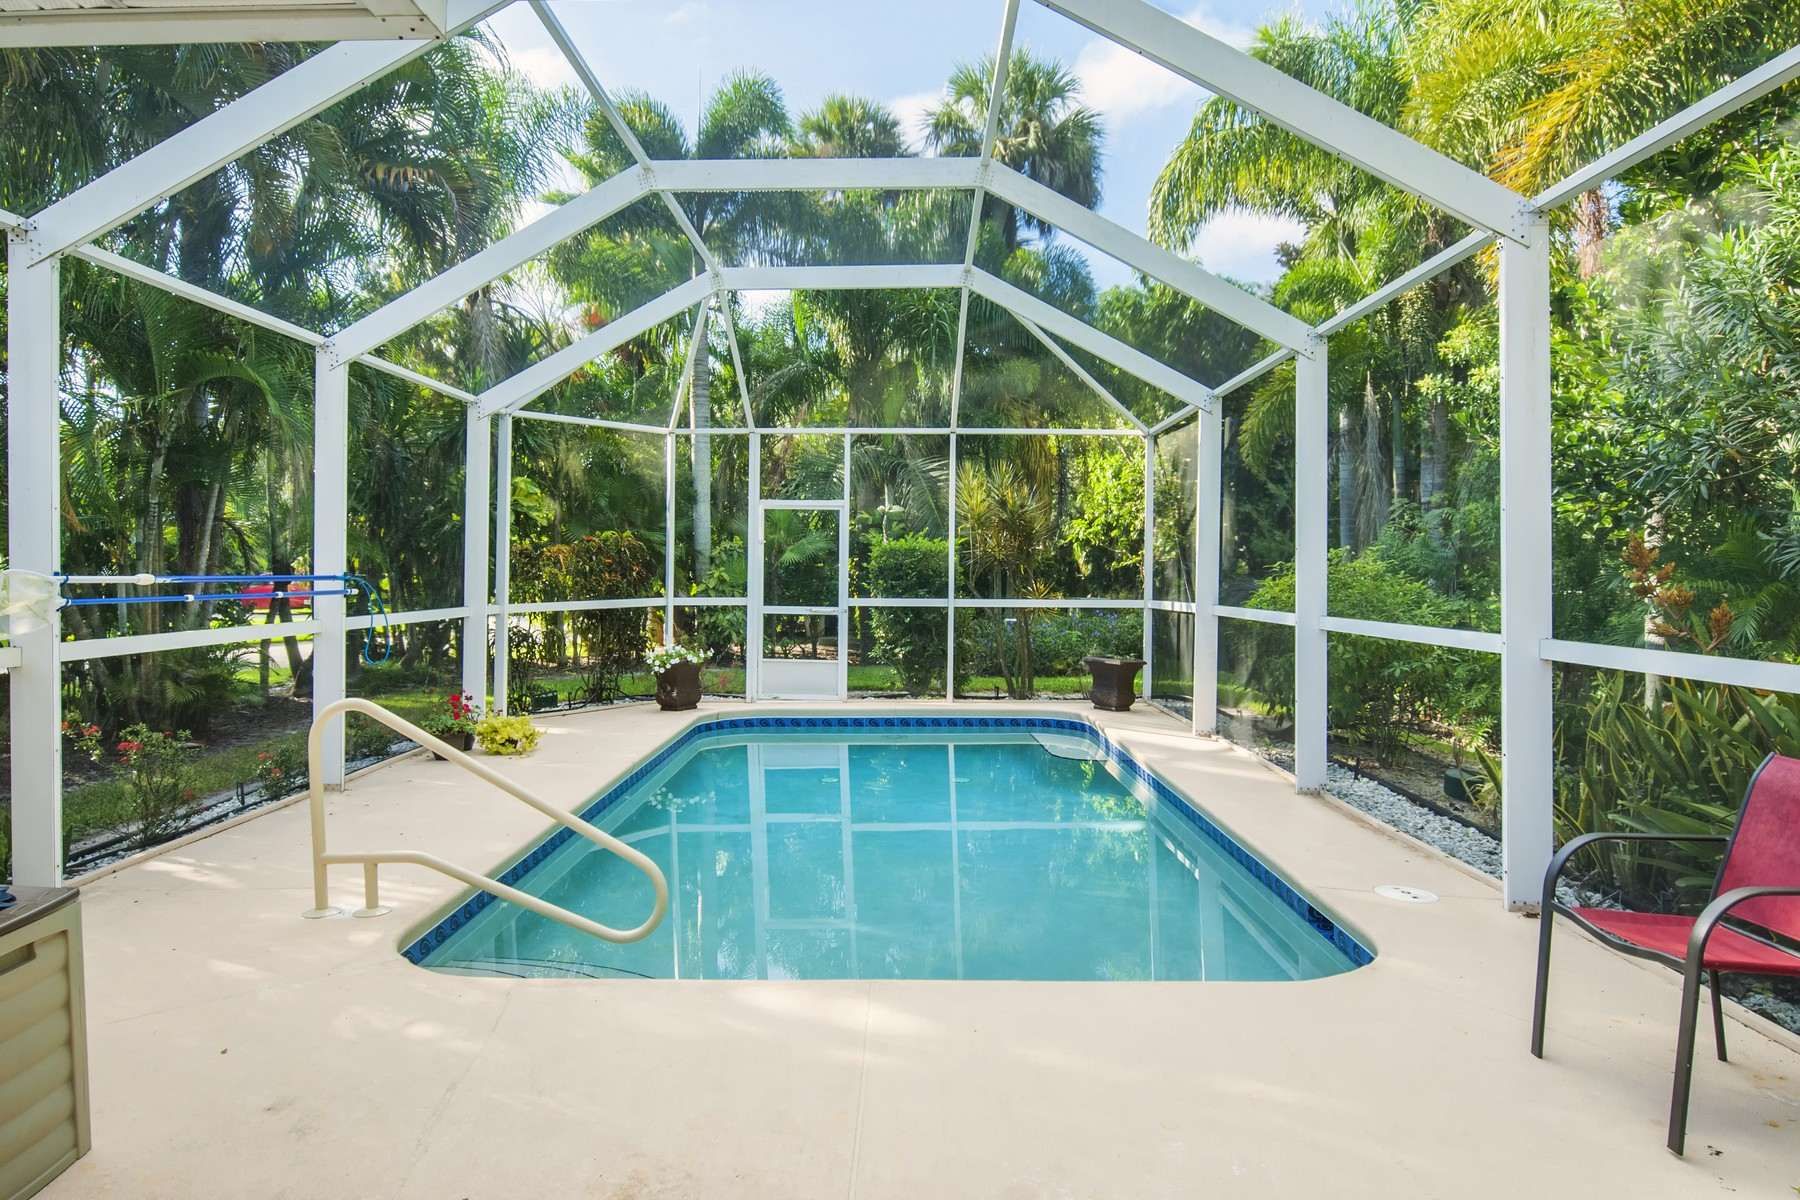 Property for Sale at Fantastic Four Bedroom Pool Home 819 41st Court Vero Beach, Florida 32960 United States